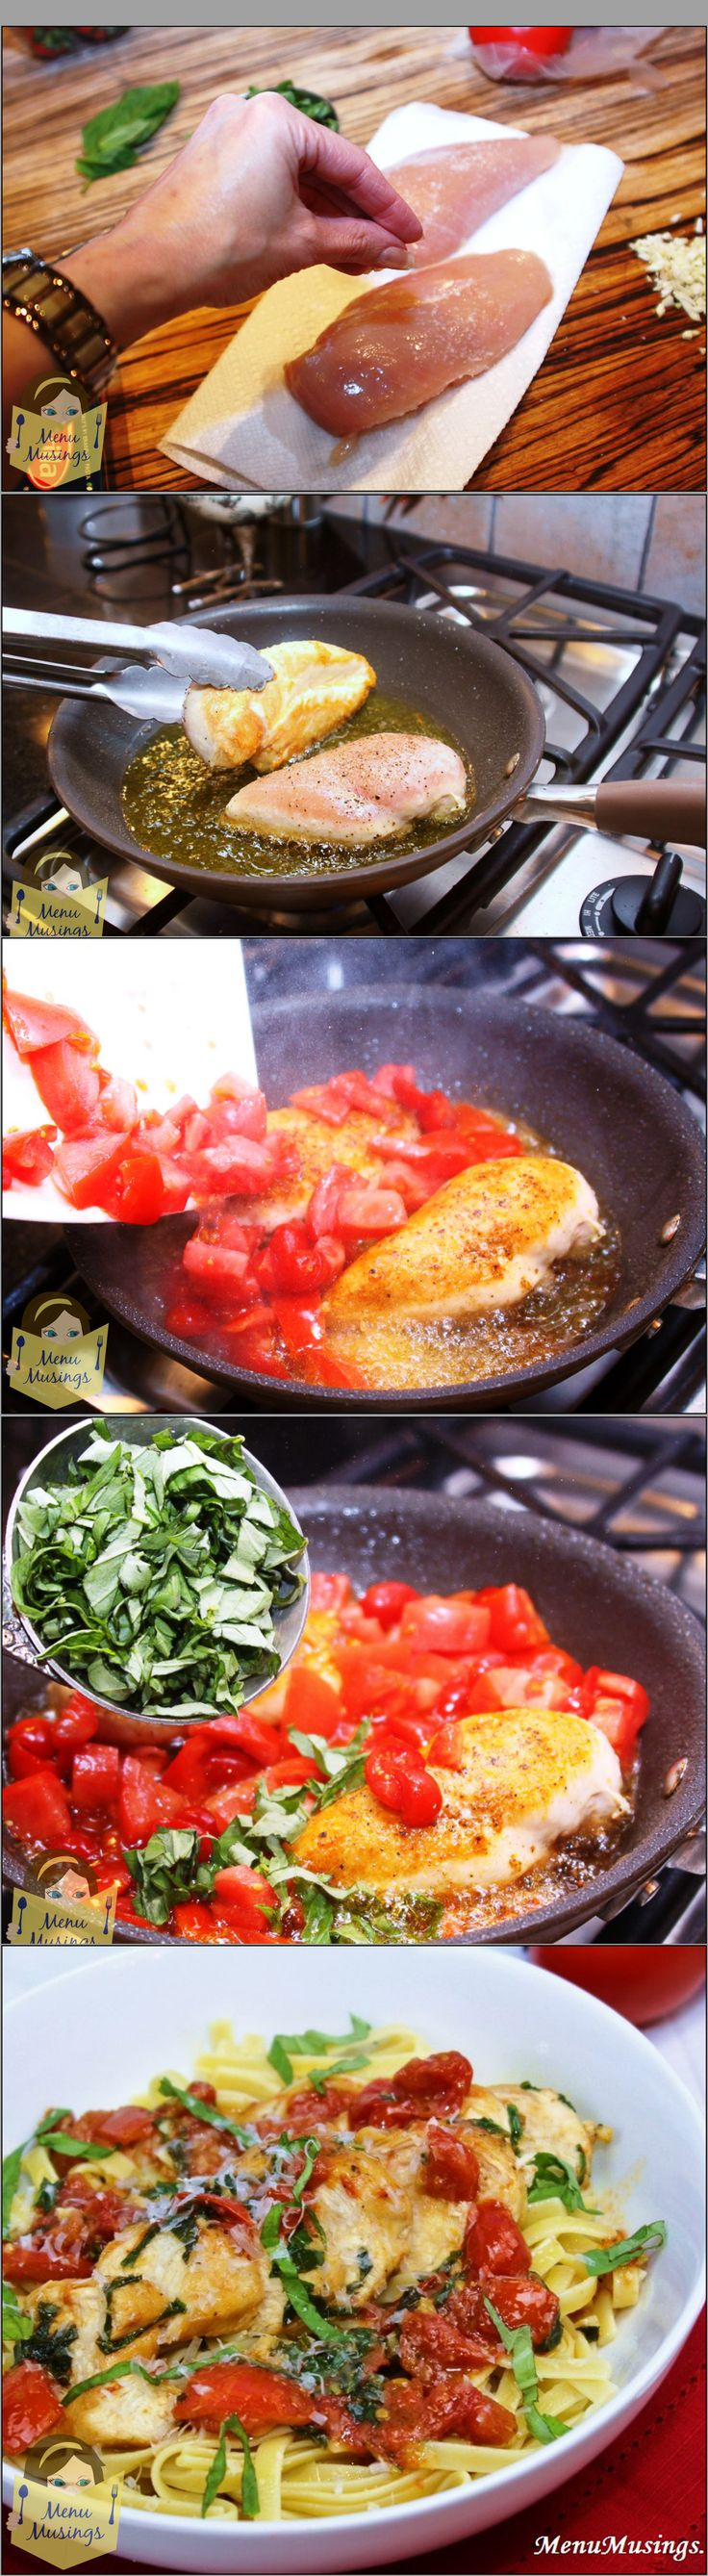 Tomato Basil Chicken - This step-by-step photo